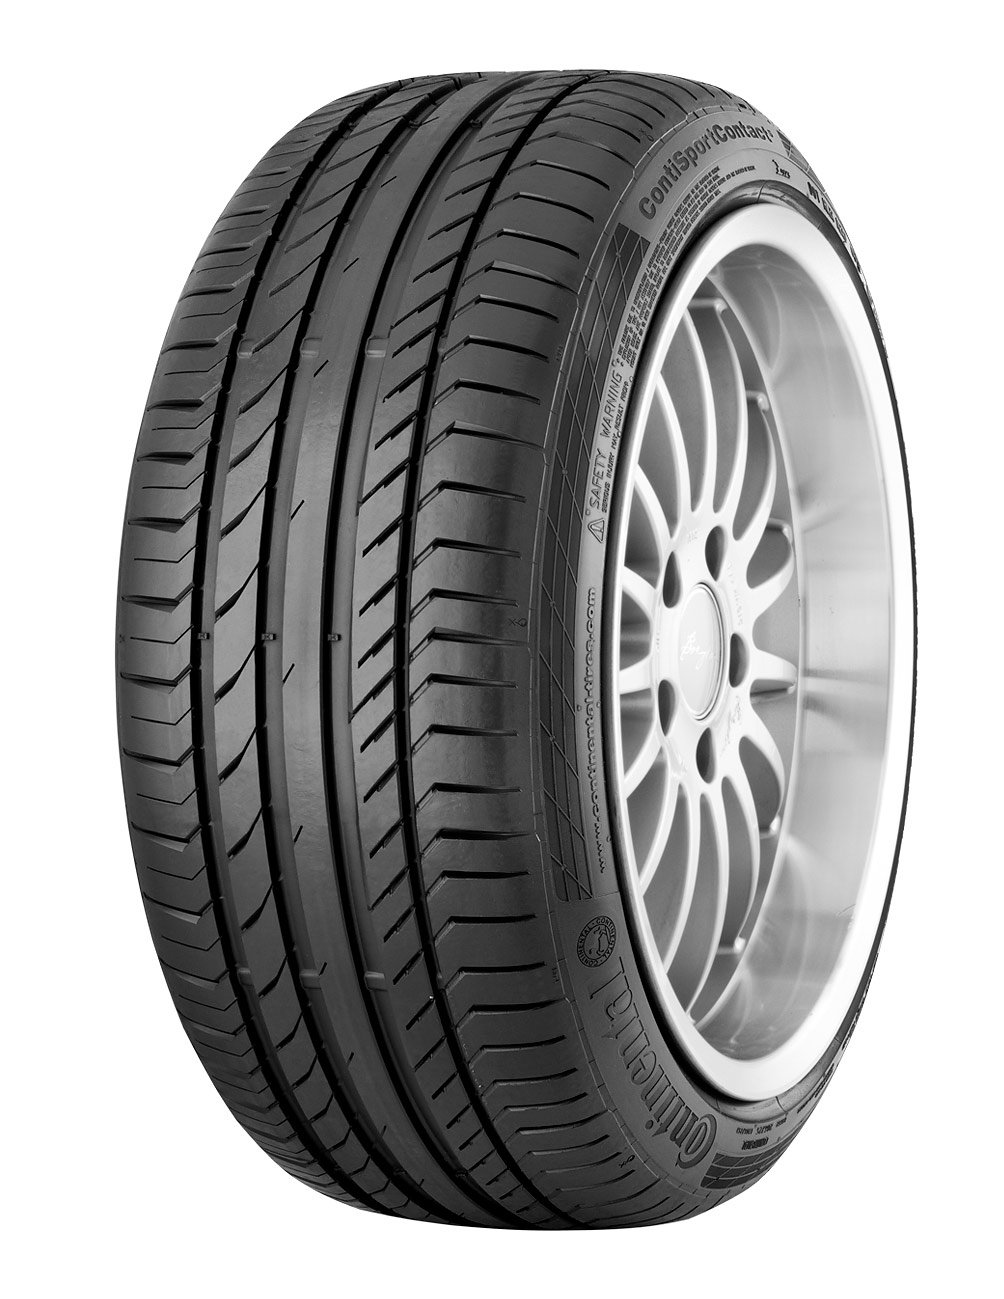 Continental ContiSportContact 5 SUV 255/50 R19 SSR (RunFlat)